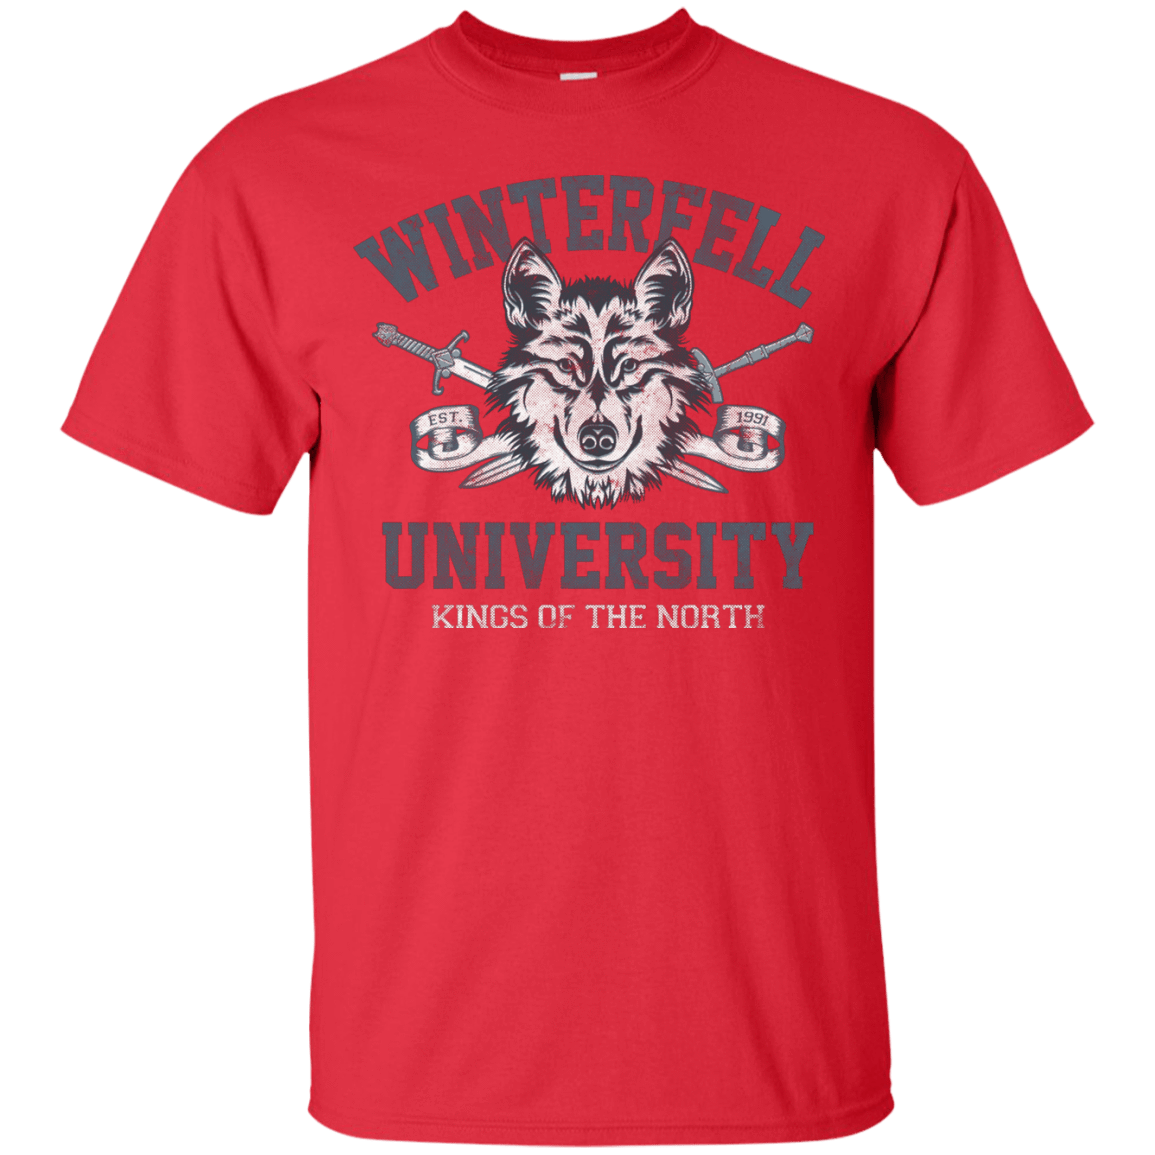 Winterfell U T-Shirt